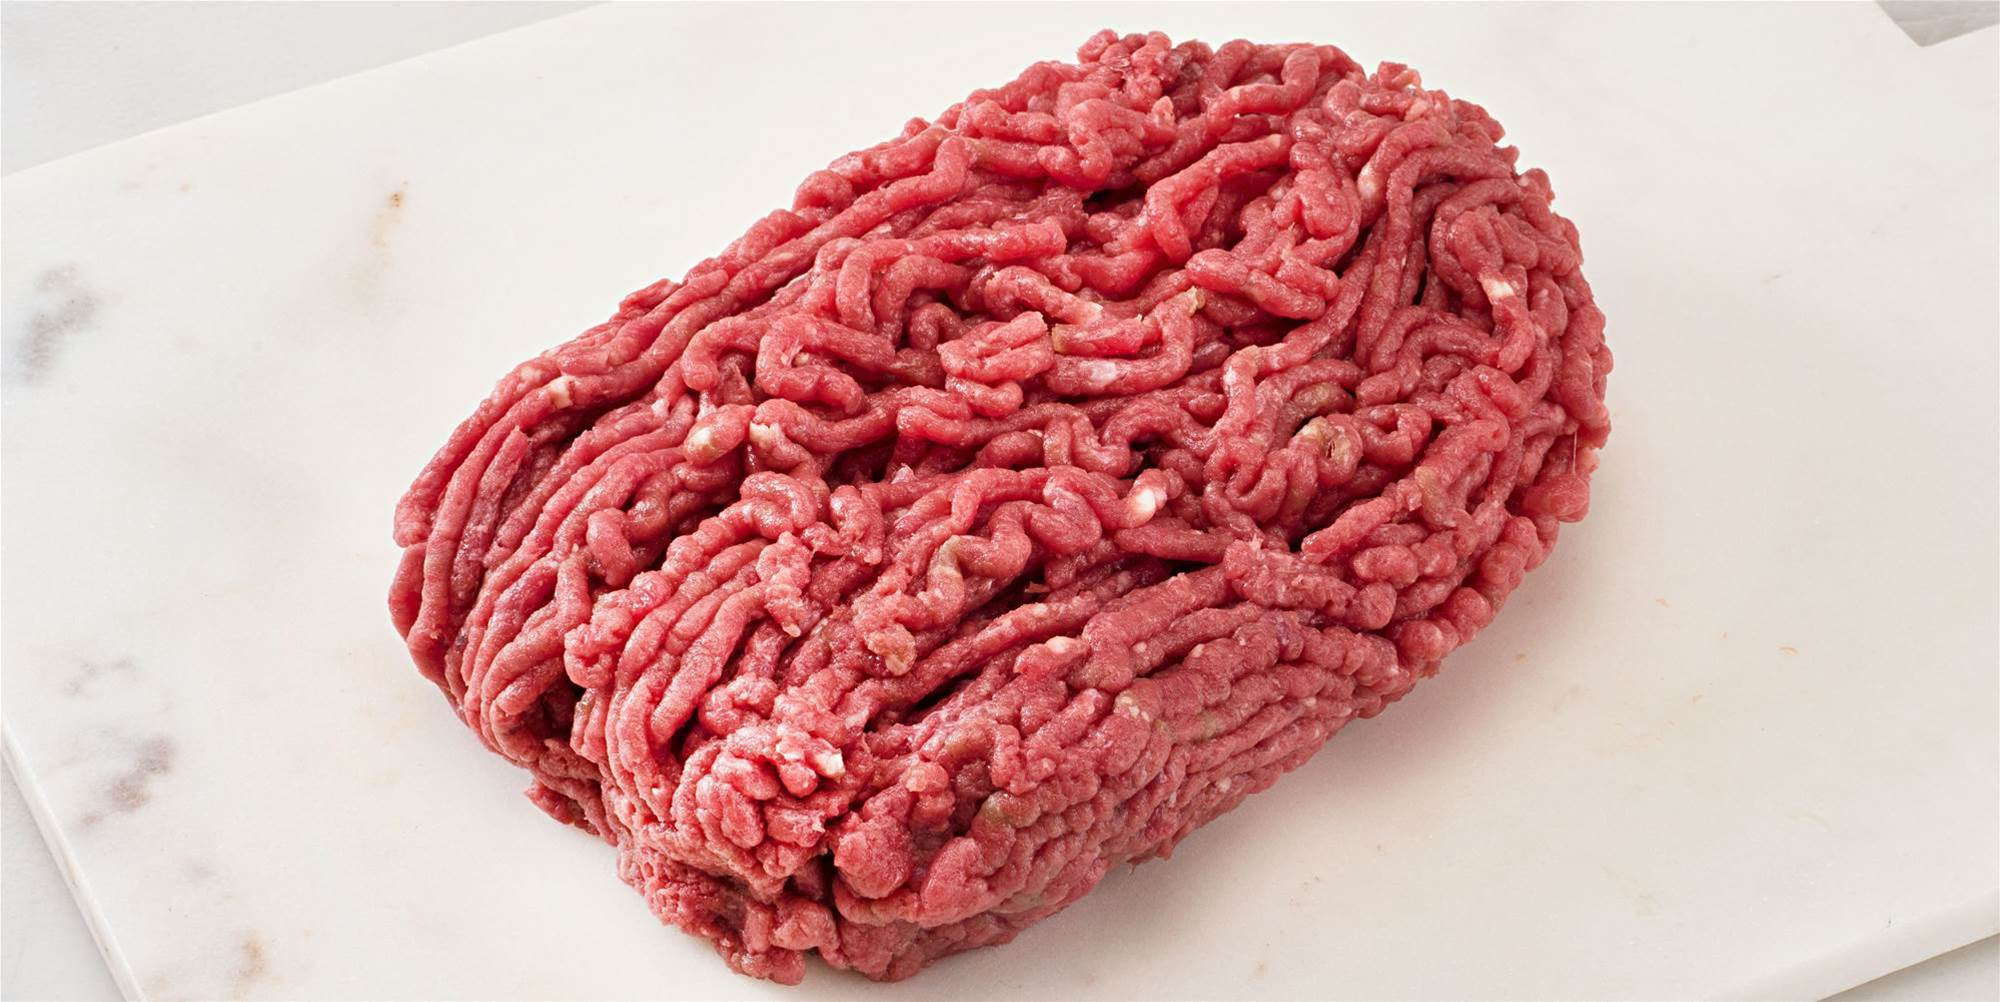 The Smartest Way to Freeze Mince So It Thaws Faster